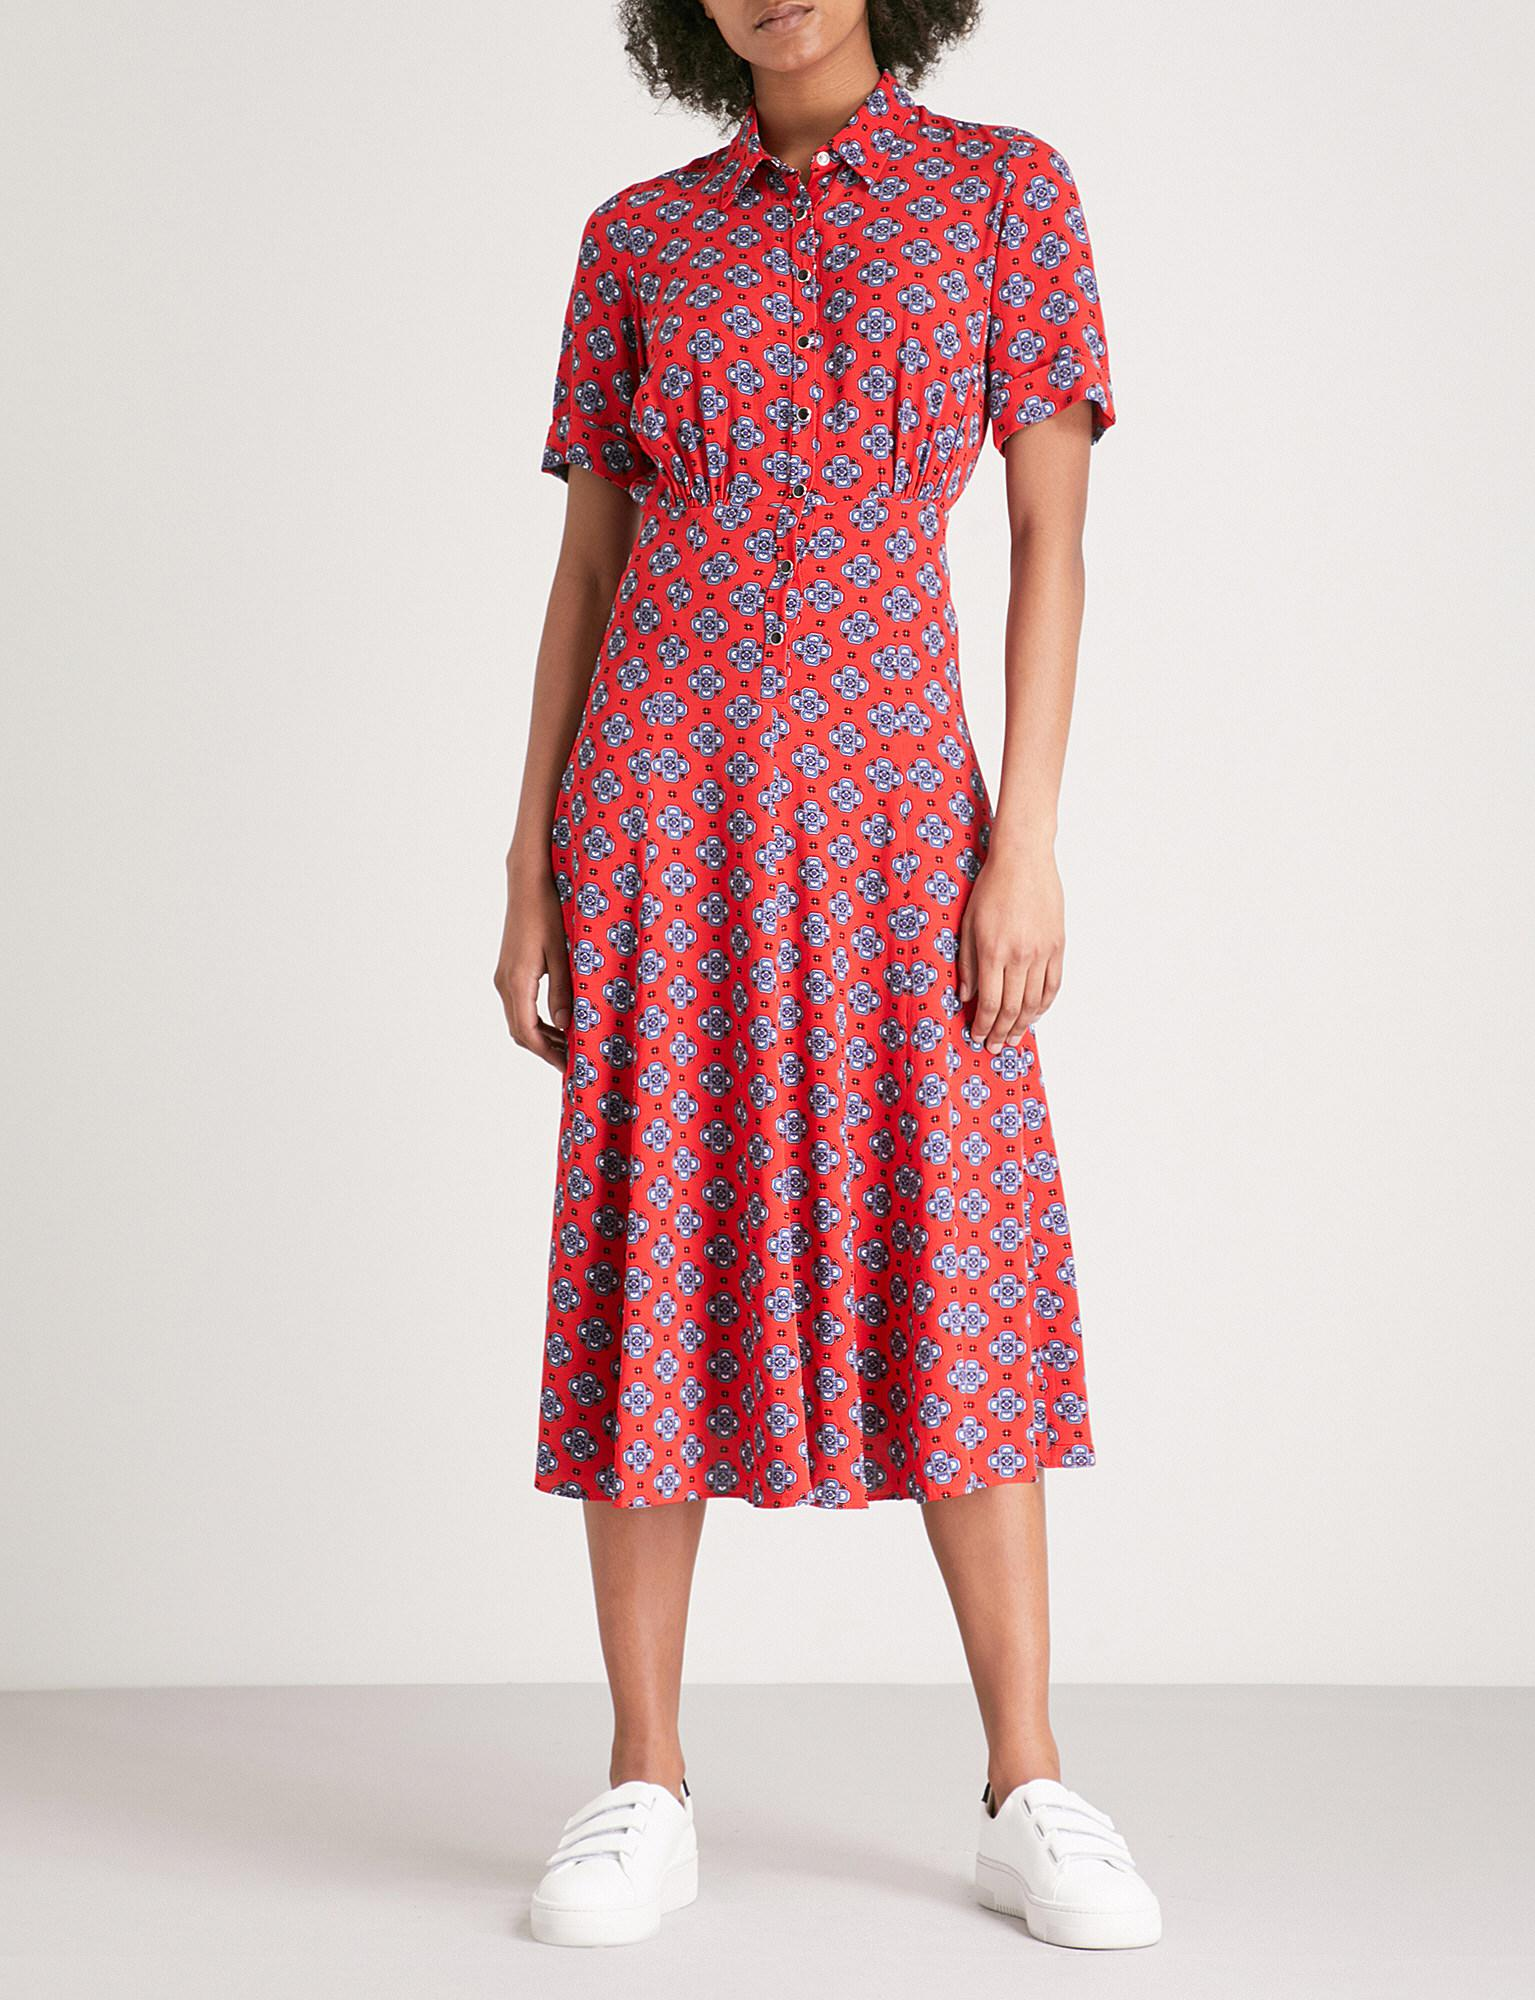 a9afd1d20c2f Lyst - Sandro Floral-pattern Woven Midi Dress in Red - Save 7%